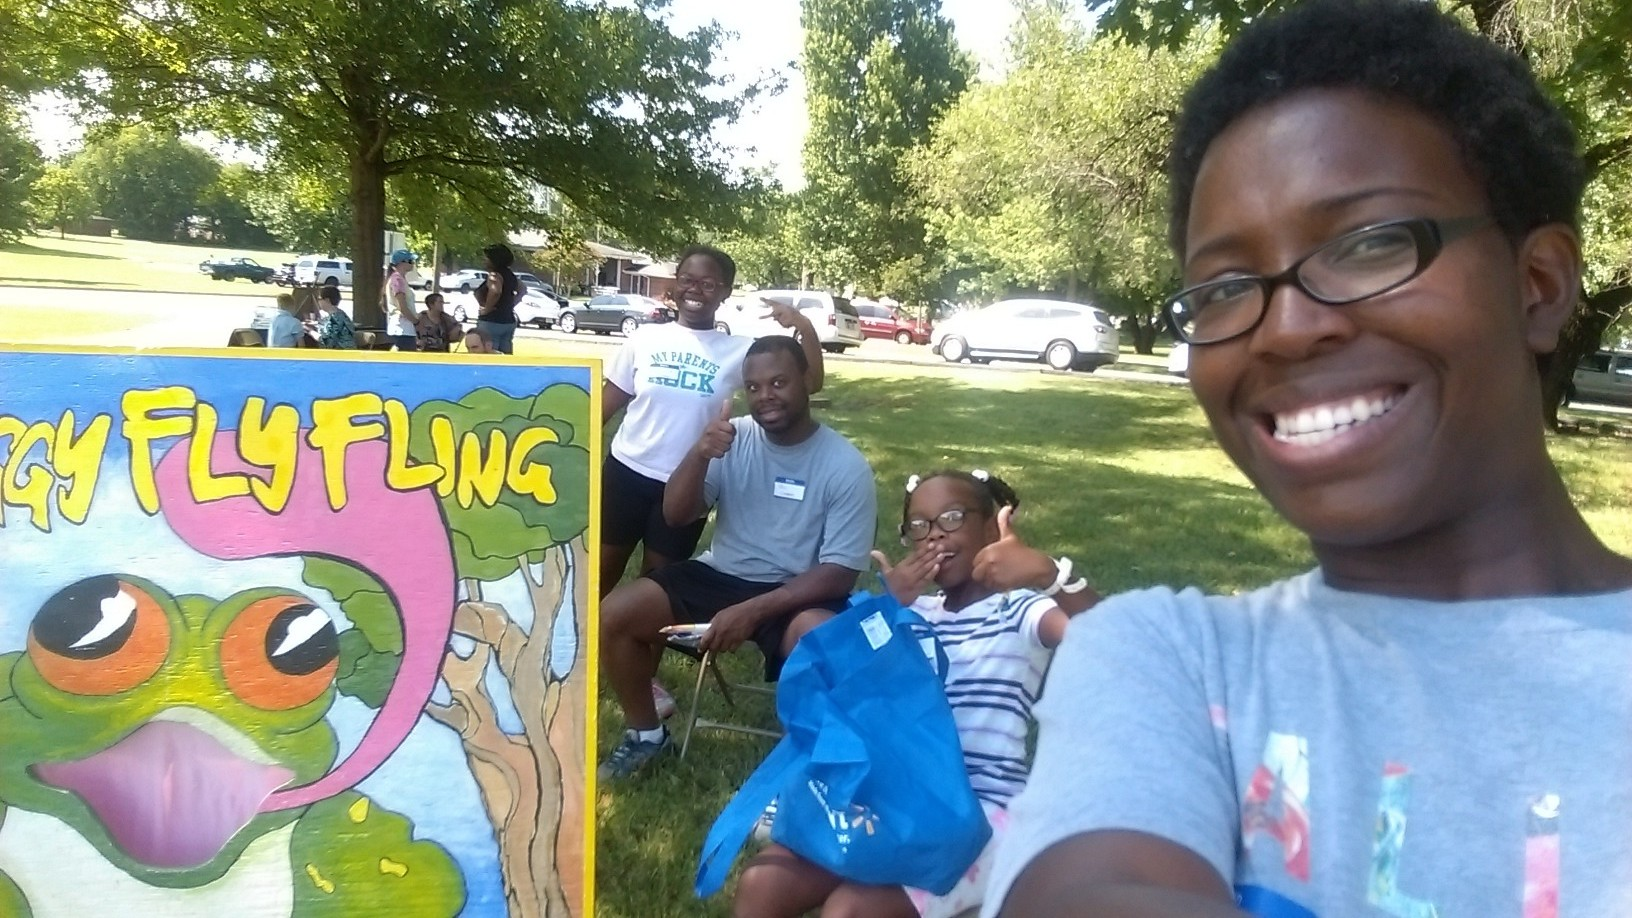 Helping at a local back to school event with other people in our community